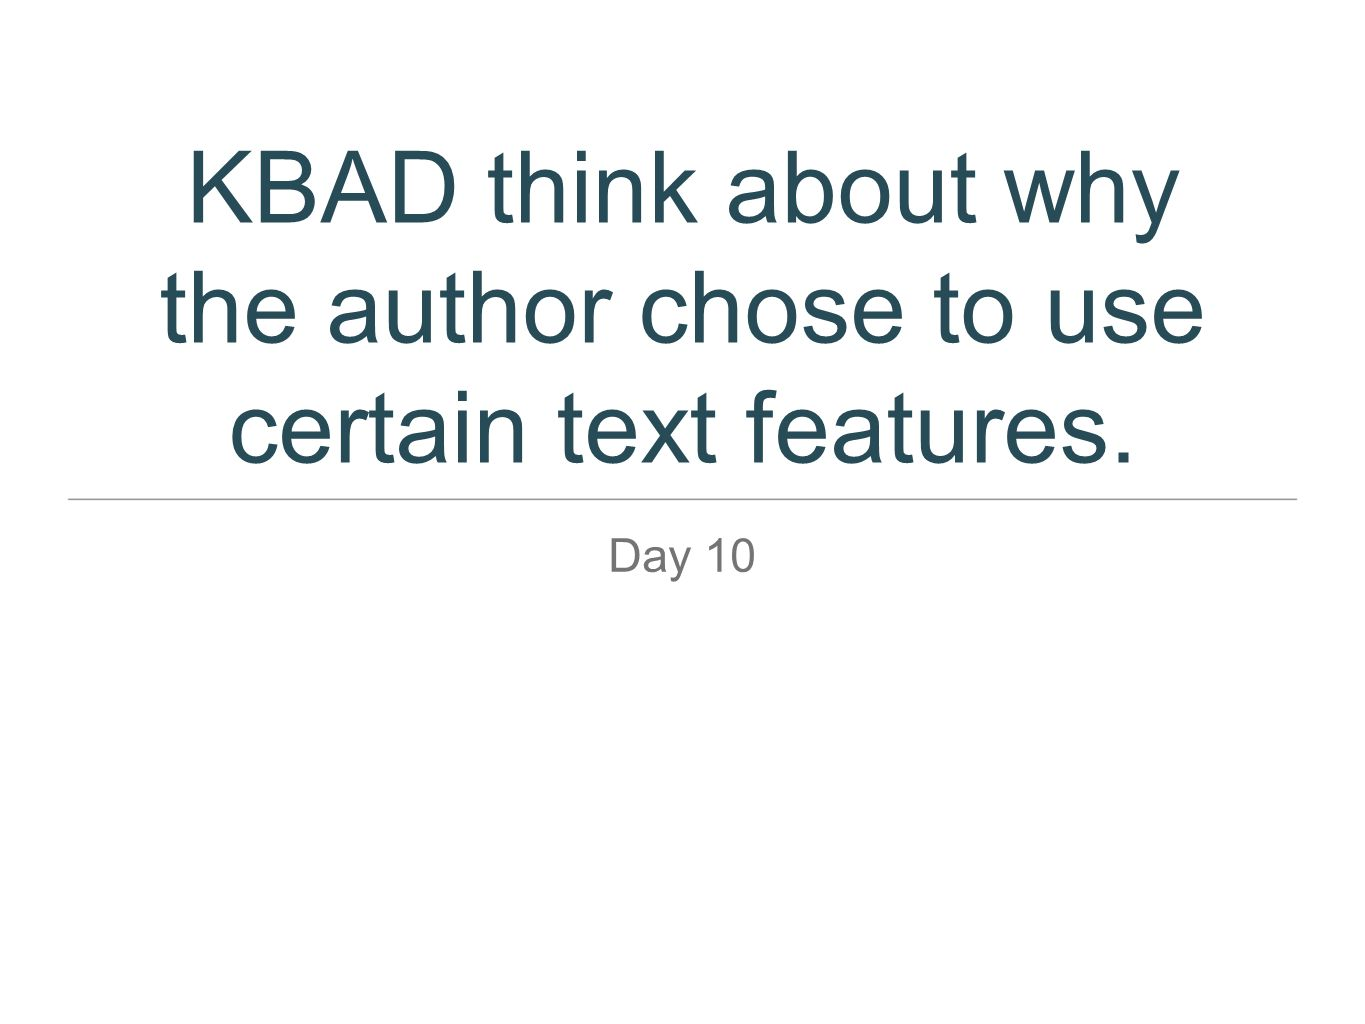 KBAD think about why the author chose to use certain text features.